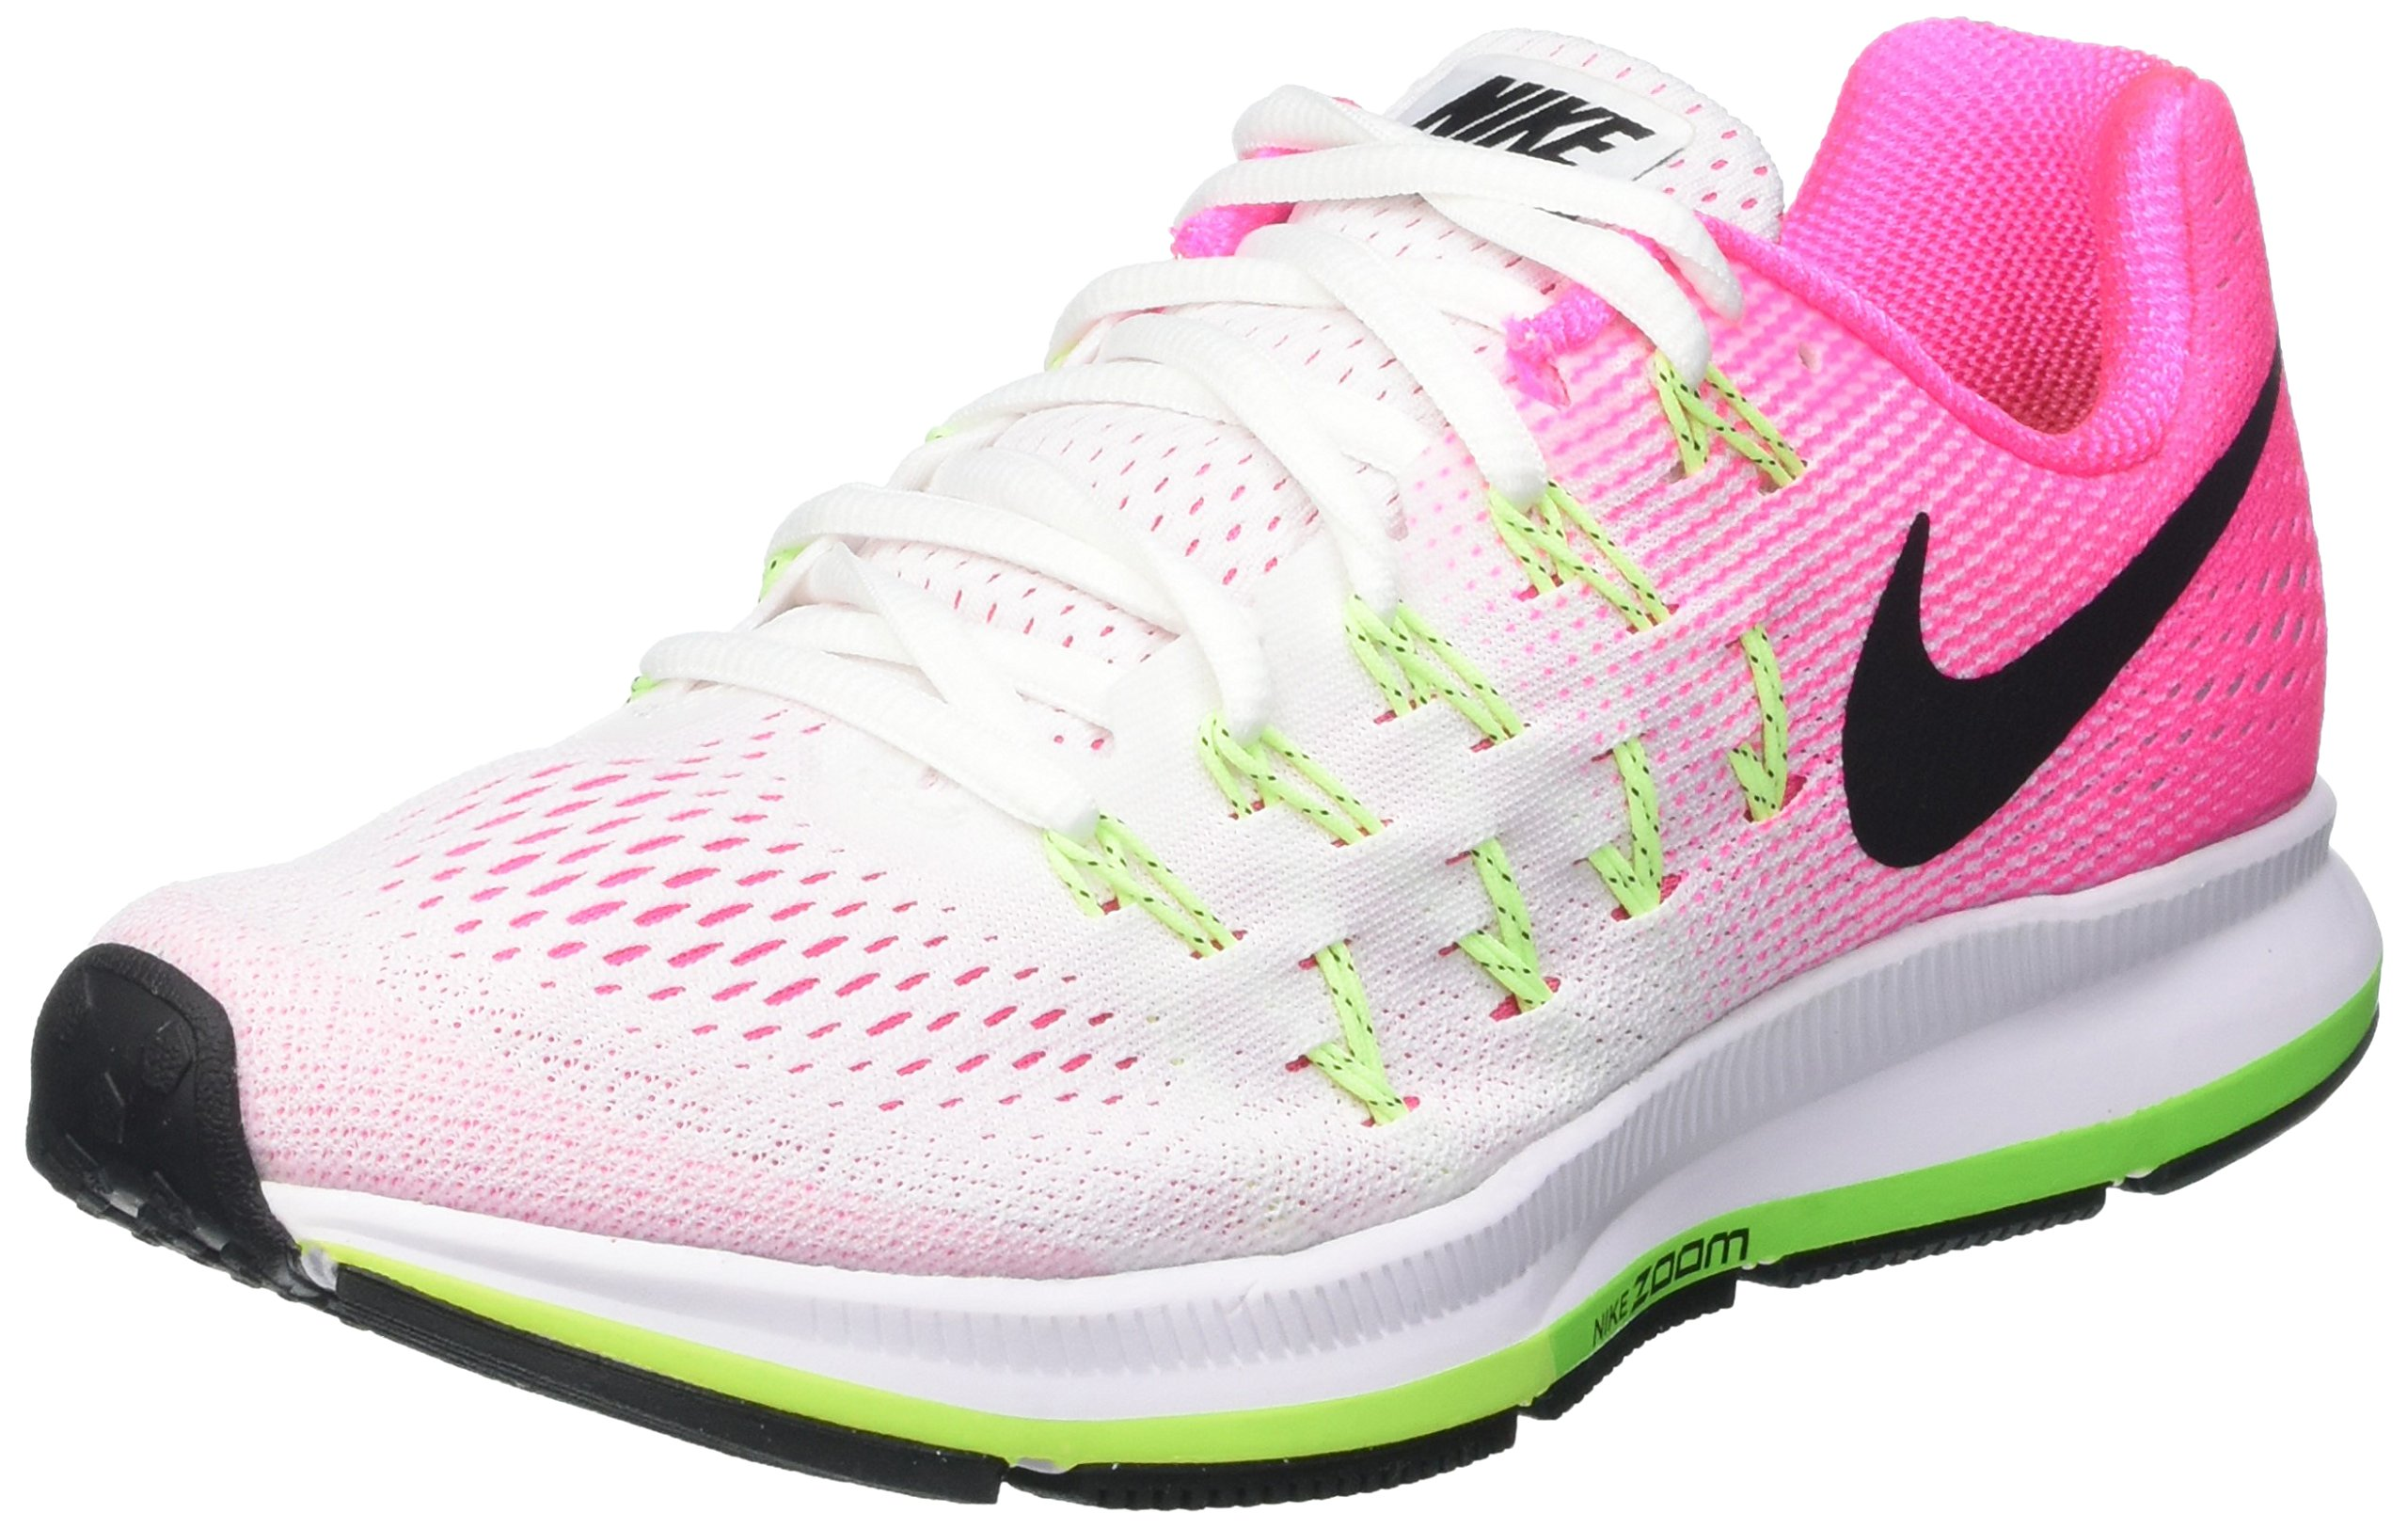 79c263f5960 Galleon - Nike Womens Pegasus 33 Shoes White Pink Blast 106 Size 6